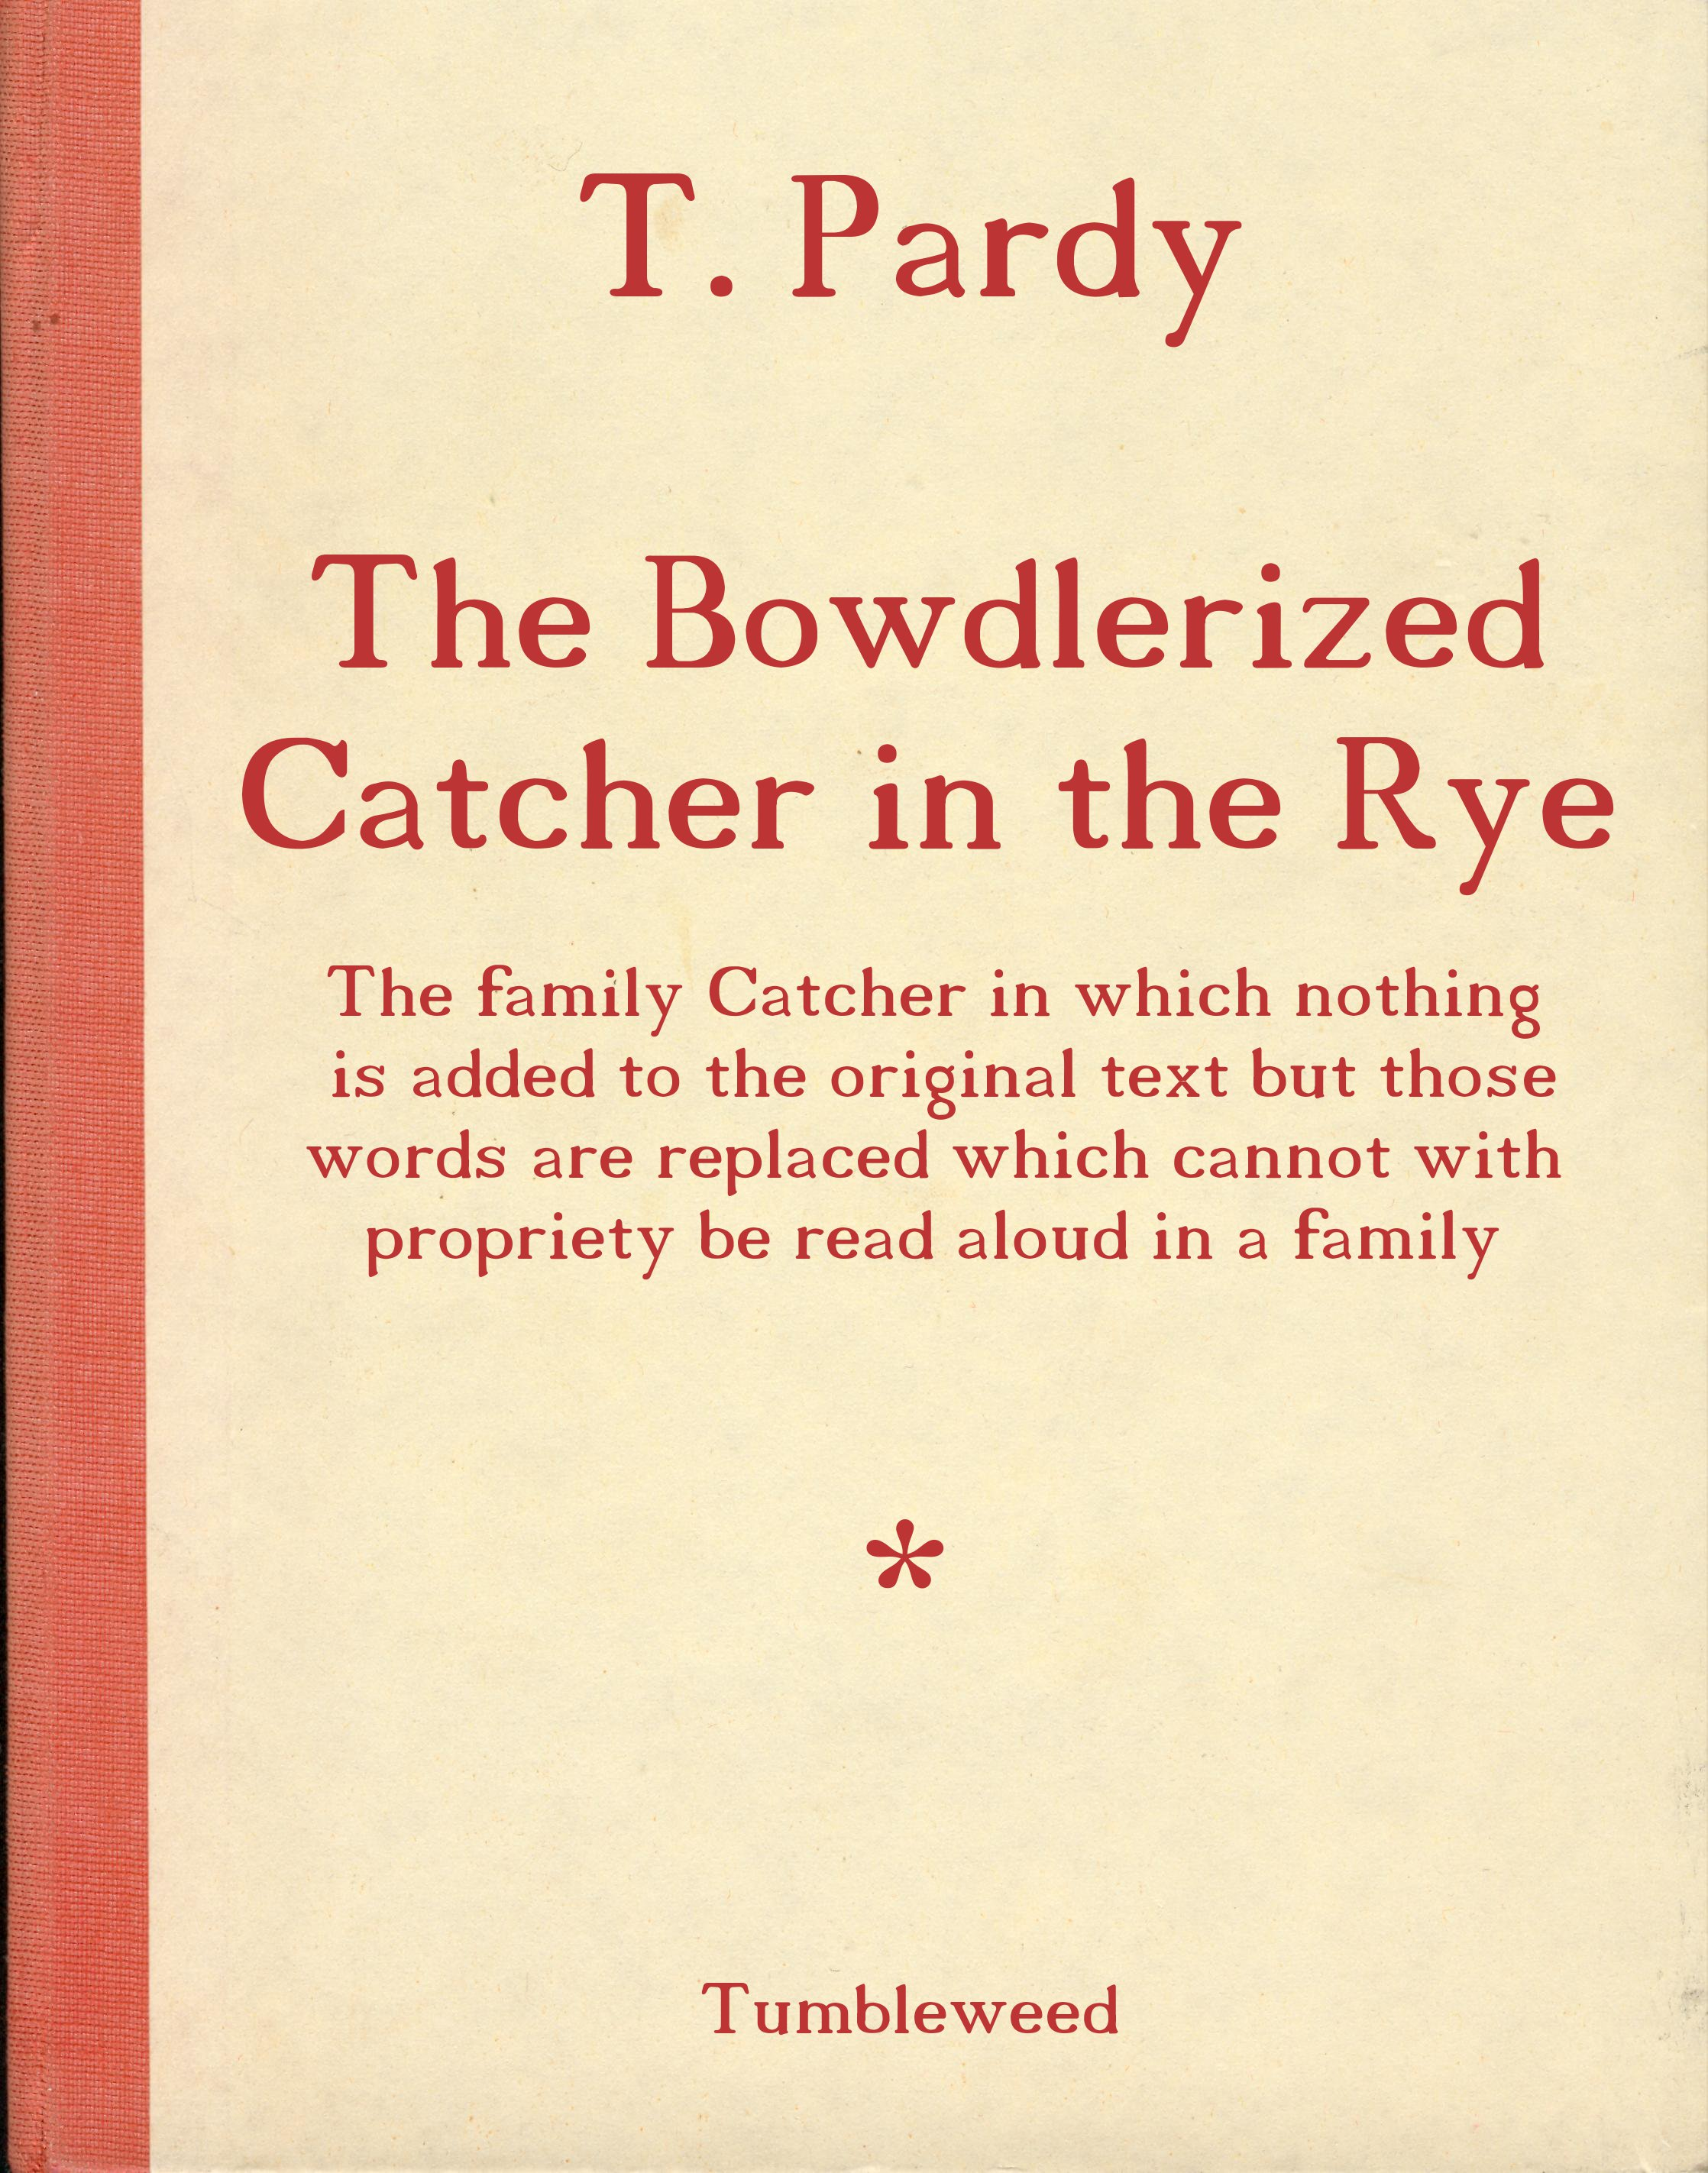 holden caulfield essay holden caulfield essay the catcher in the  the catcher in the rye internal aspects